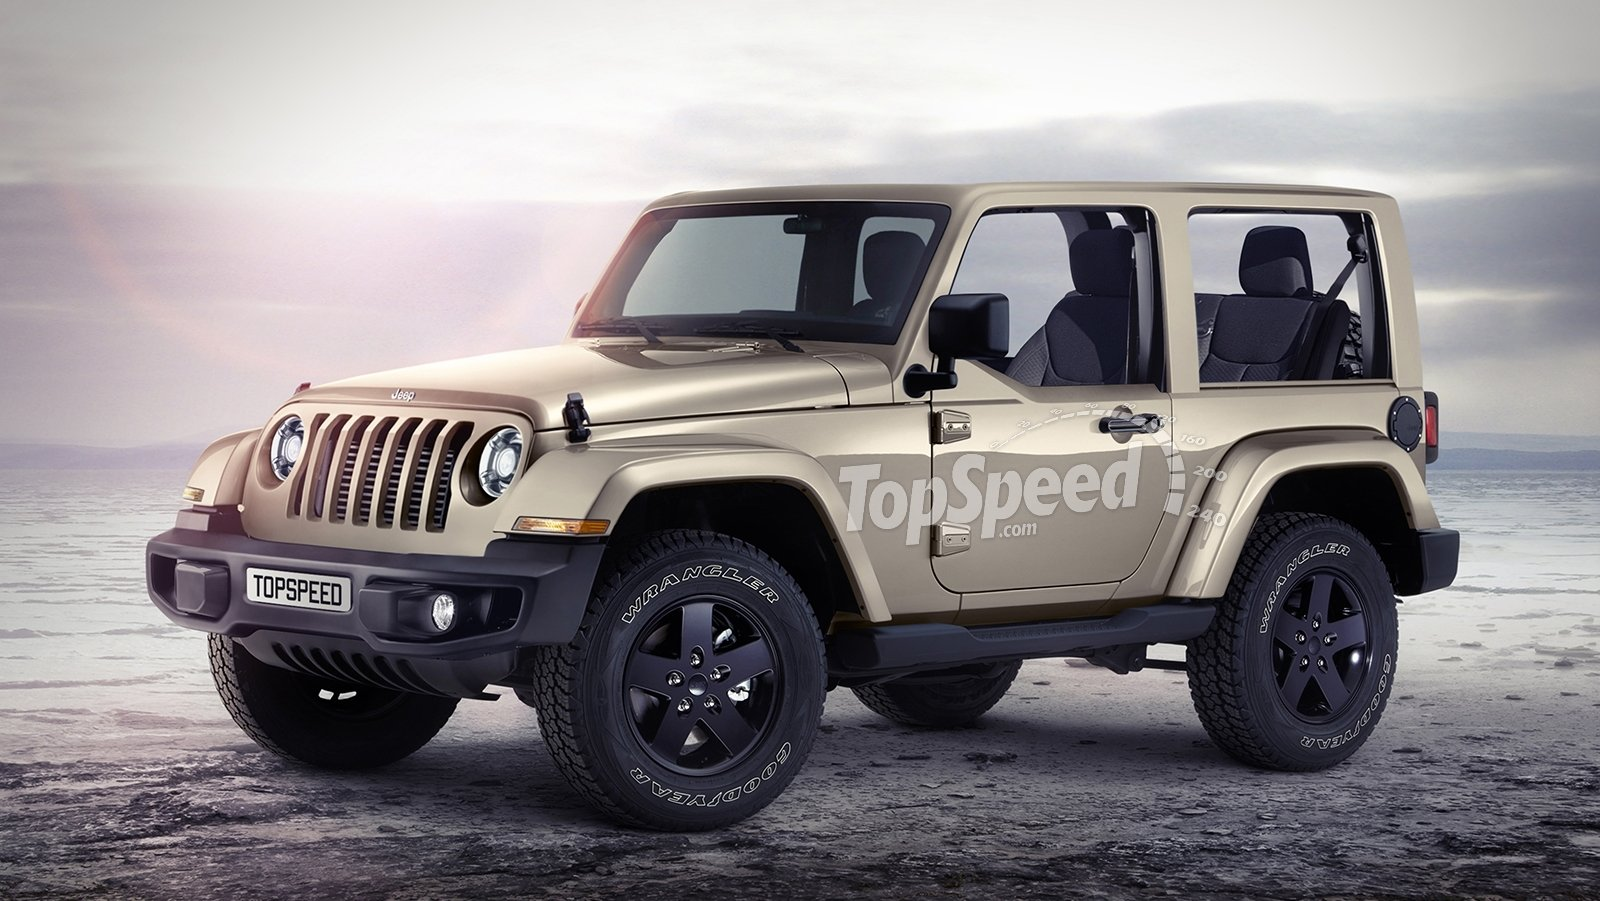 You Can Now Pre Order The 2018 Jeep Wrangler Jl Heres All Leak Jk Online Leaks Of Information Continue To Pour From Fca Like Wind Through A Chain Link Fence But Latest News Is Doozy